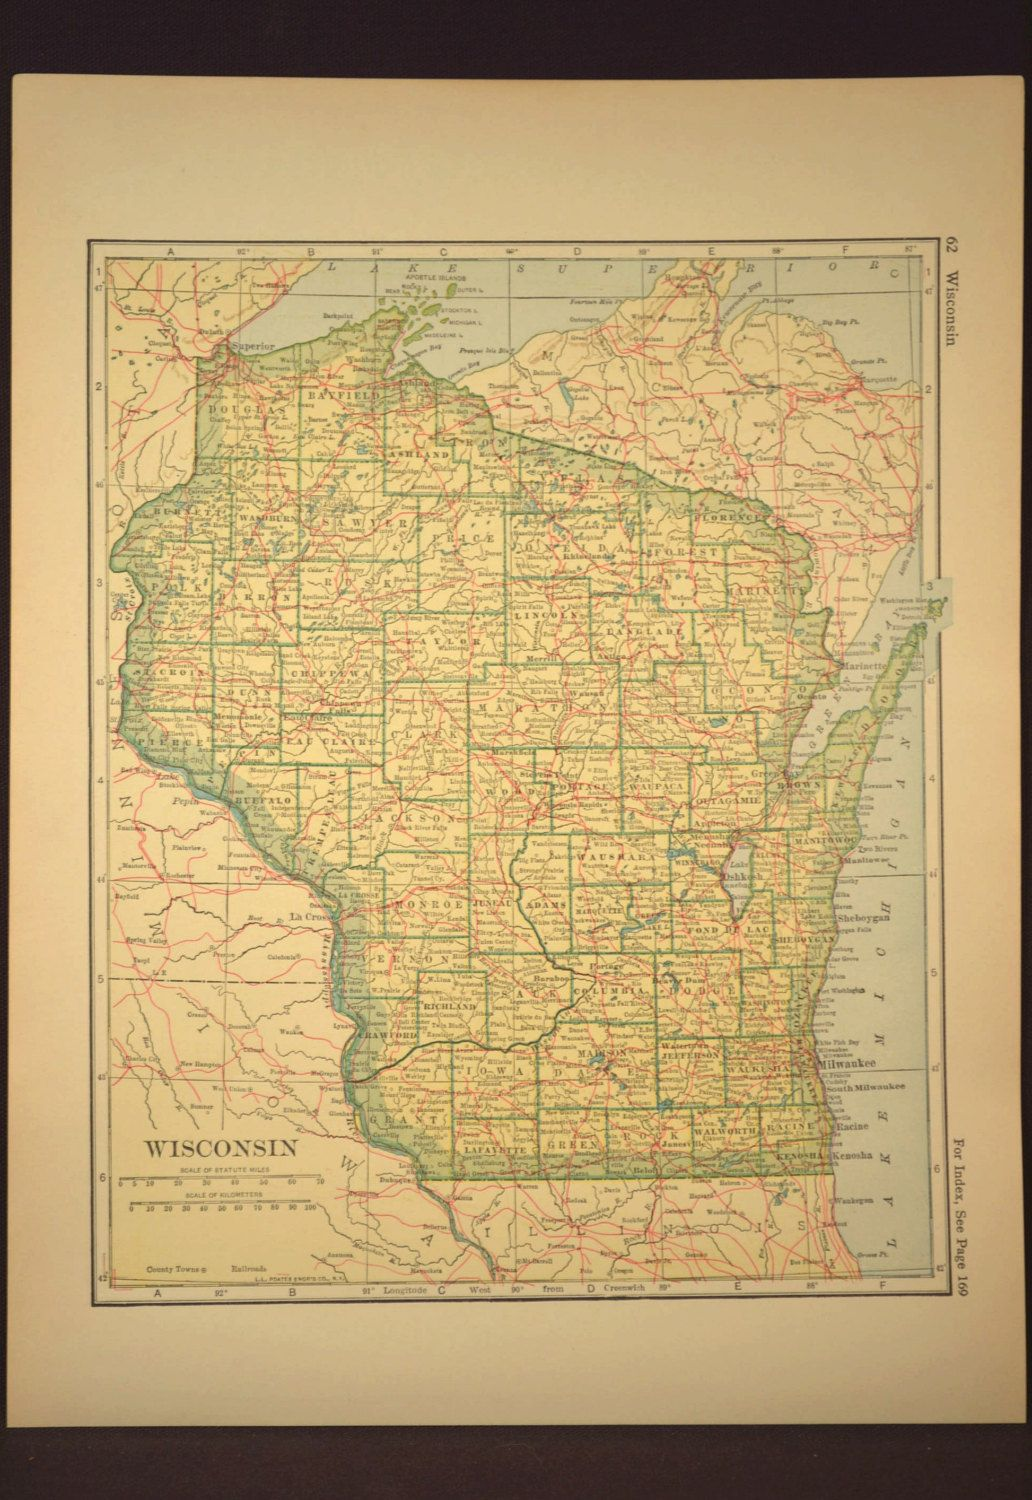 Wisconsin Map Wisconsin Railroad Vintage Original 1920s | Map Wall ...